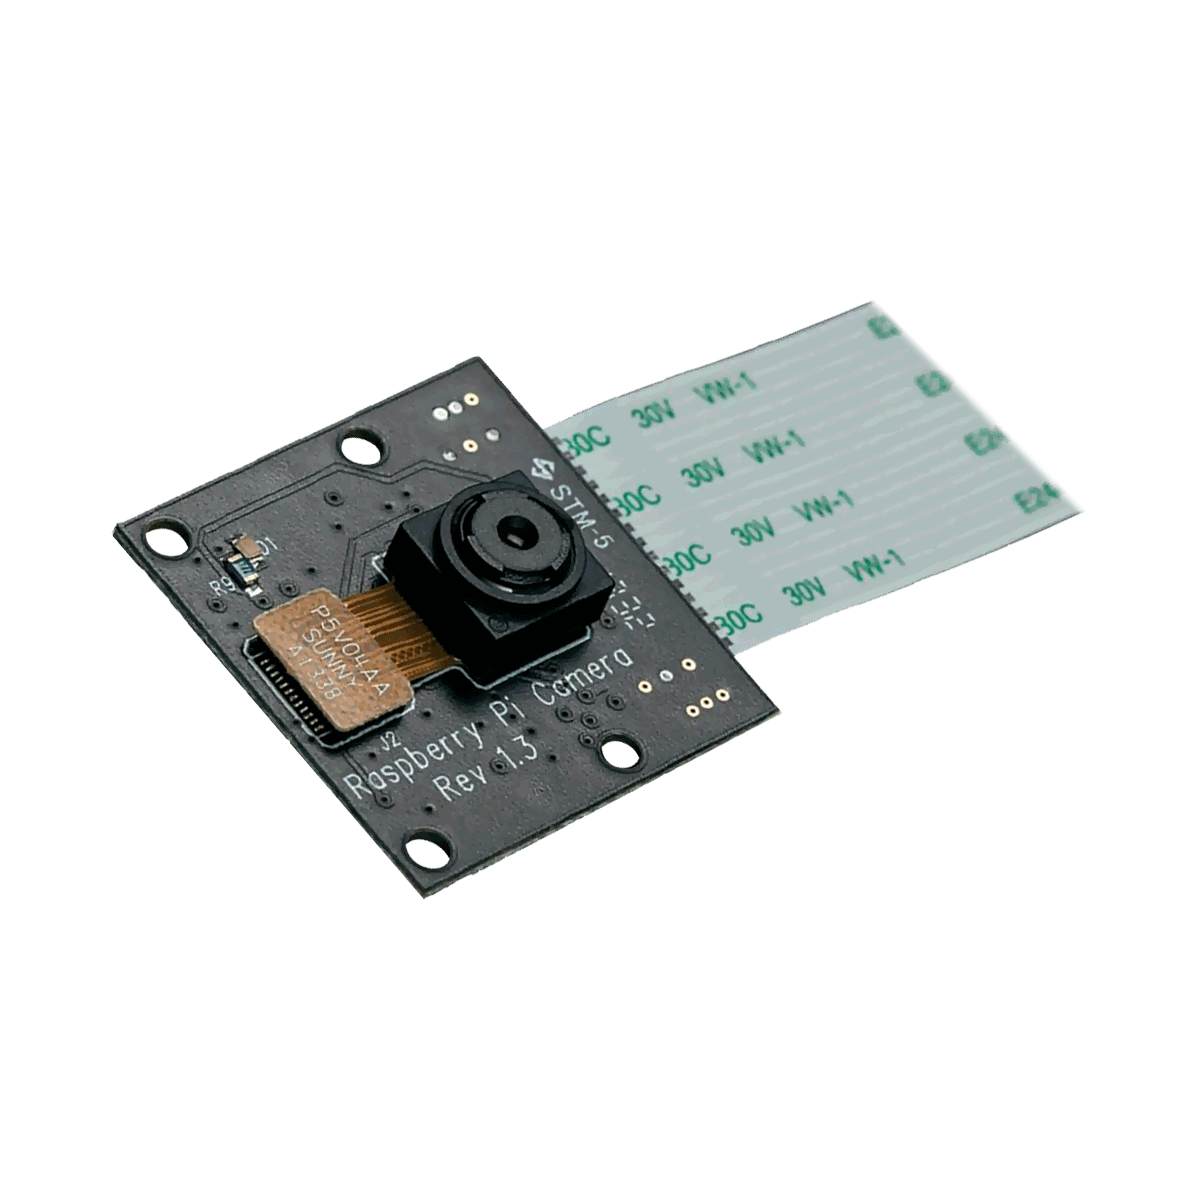 PiNoir Infrared Camera Module for Raspberry Pi | Samm Market